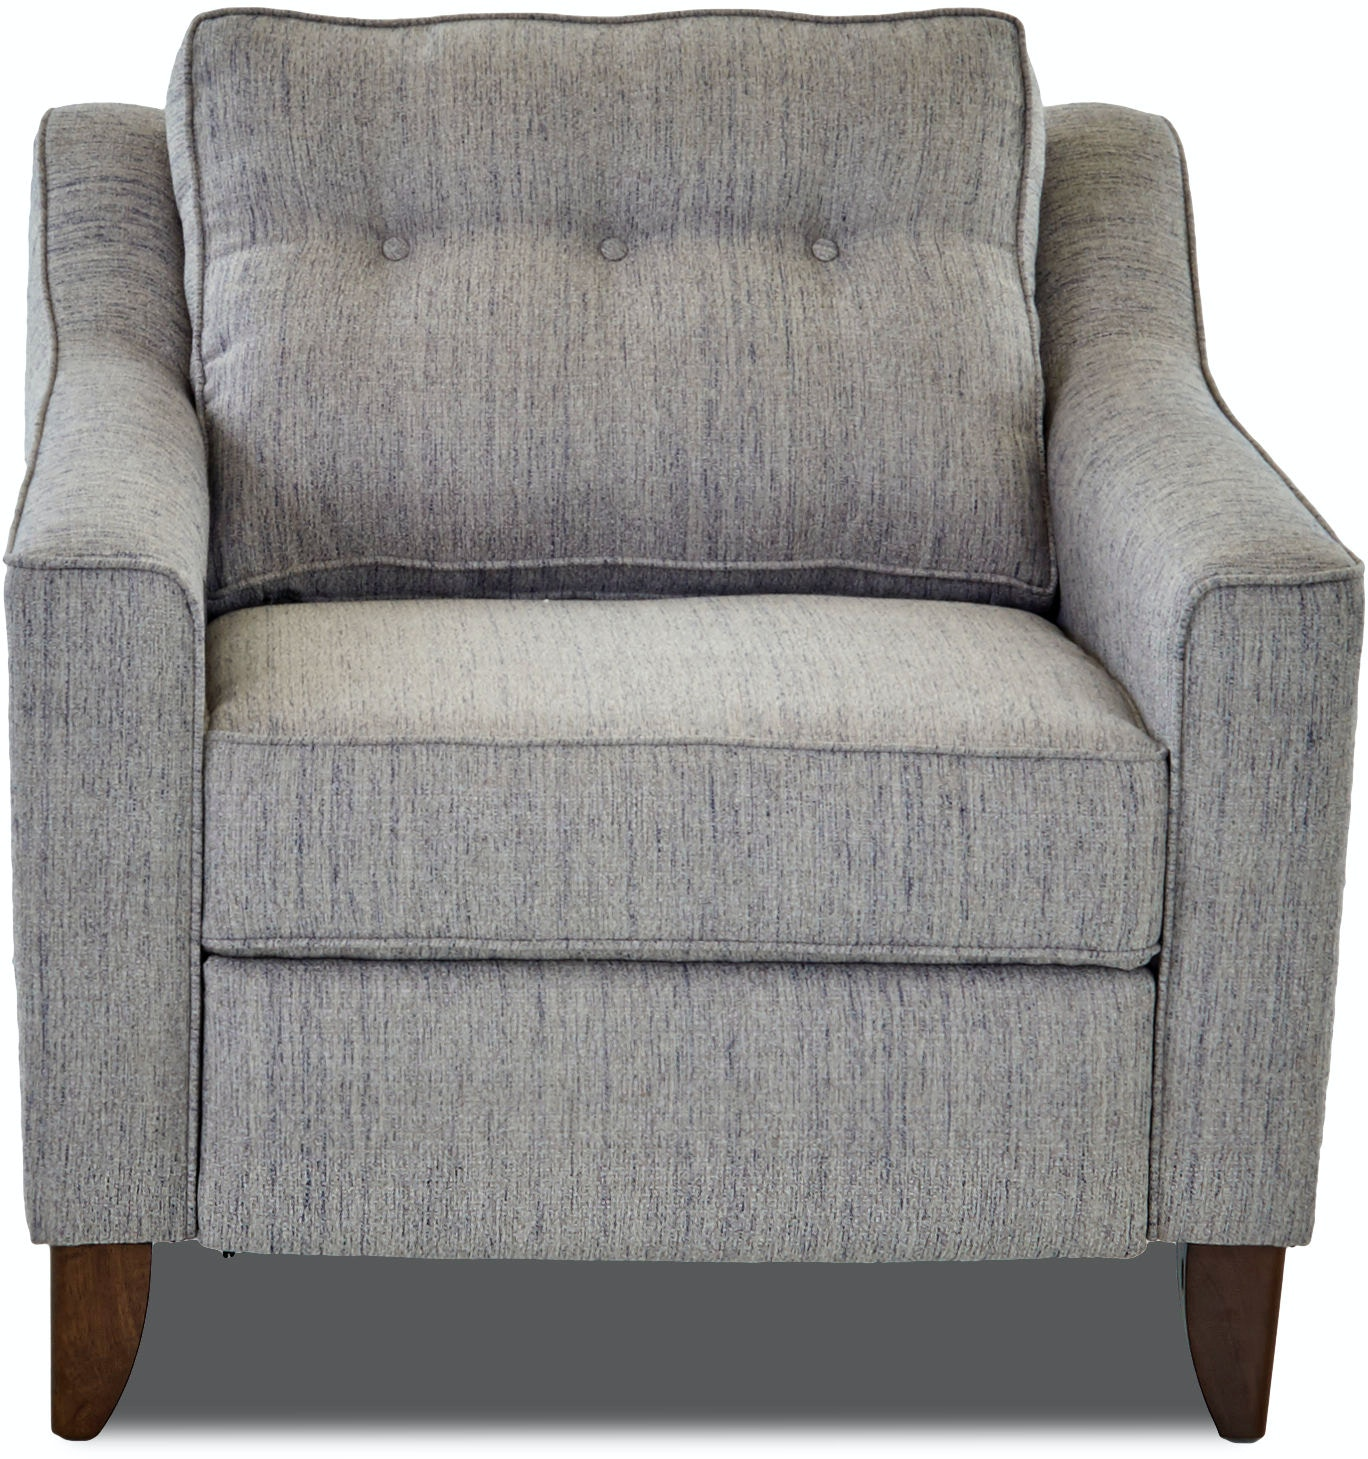 31603 Pwrcklaussner Power Recliner Karl S